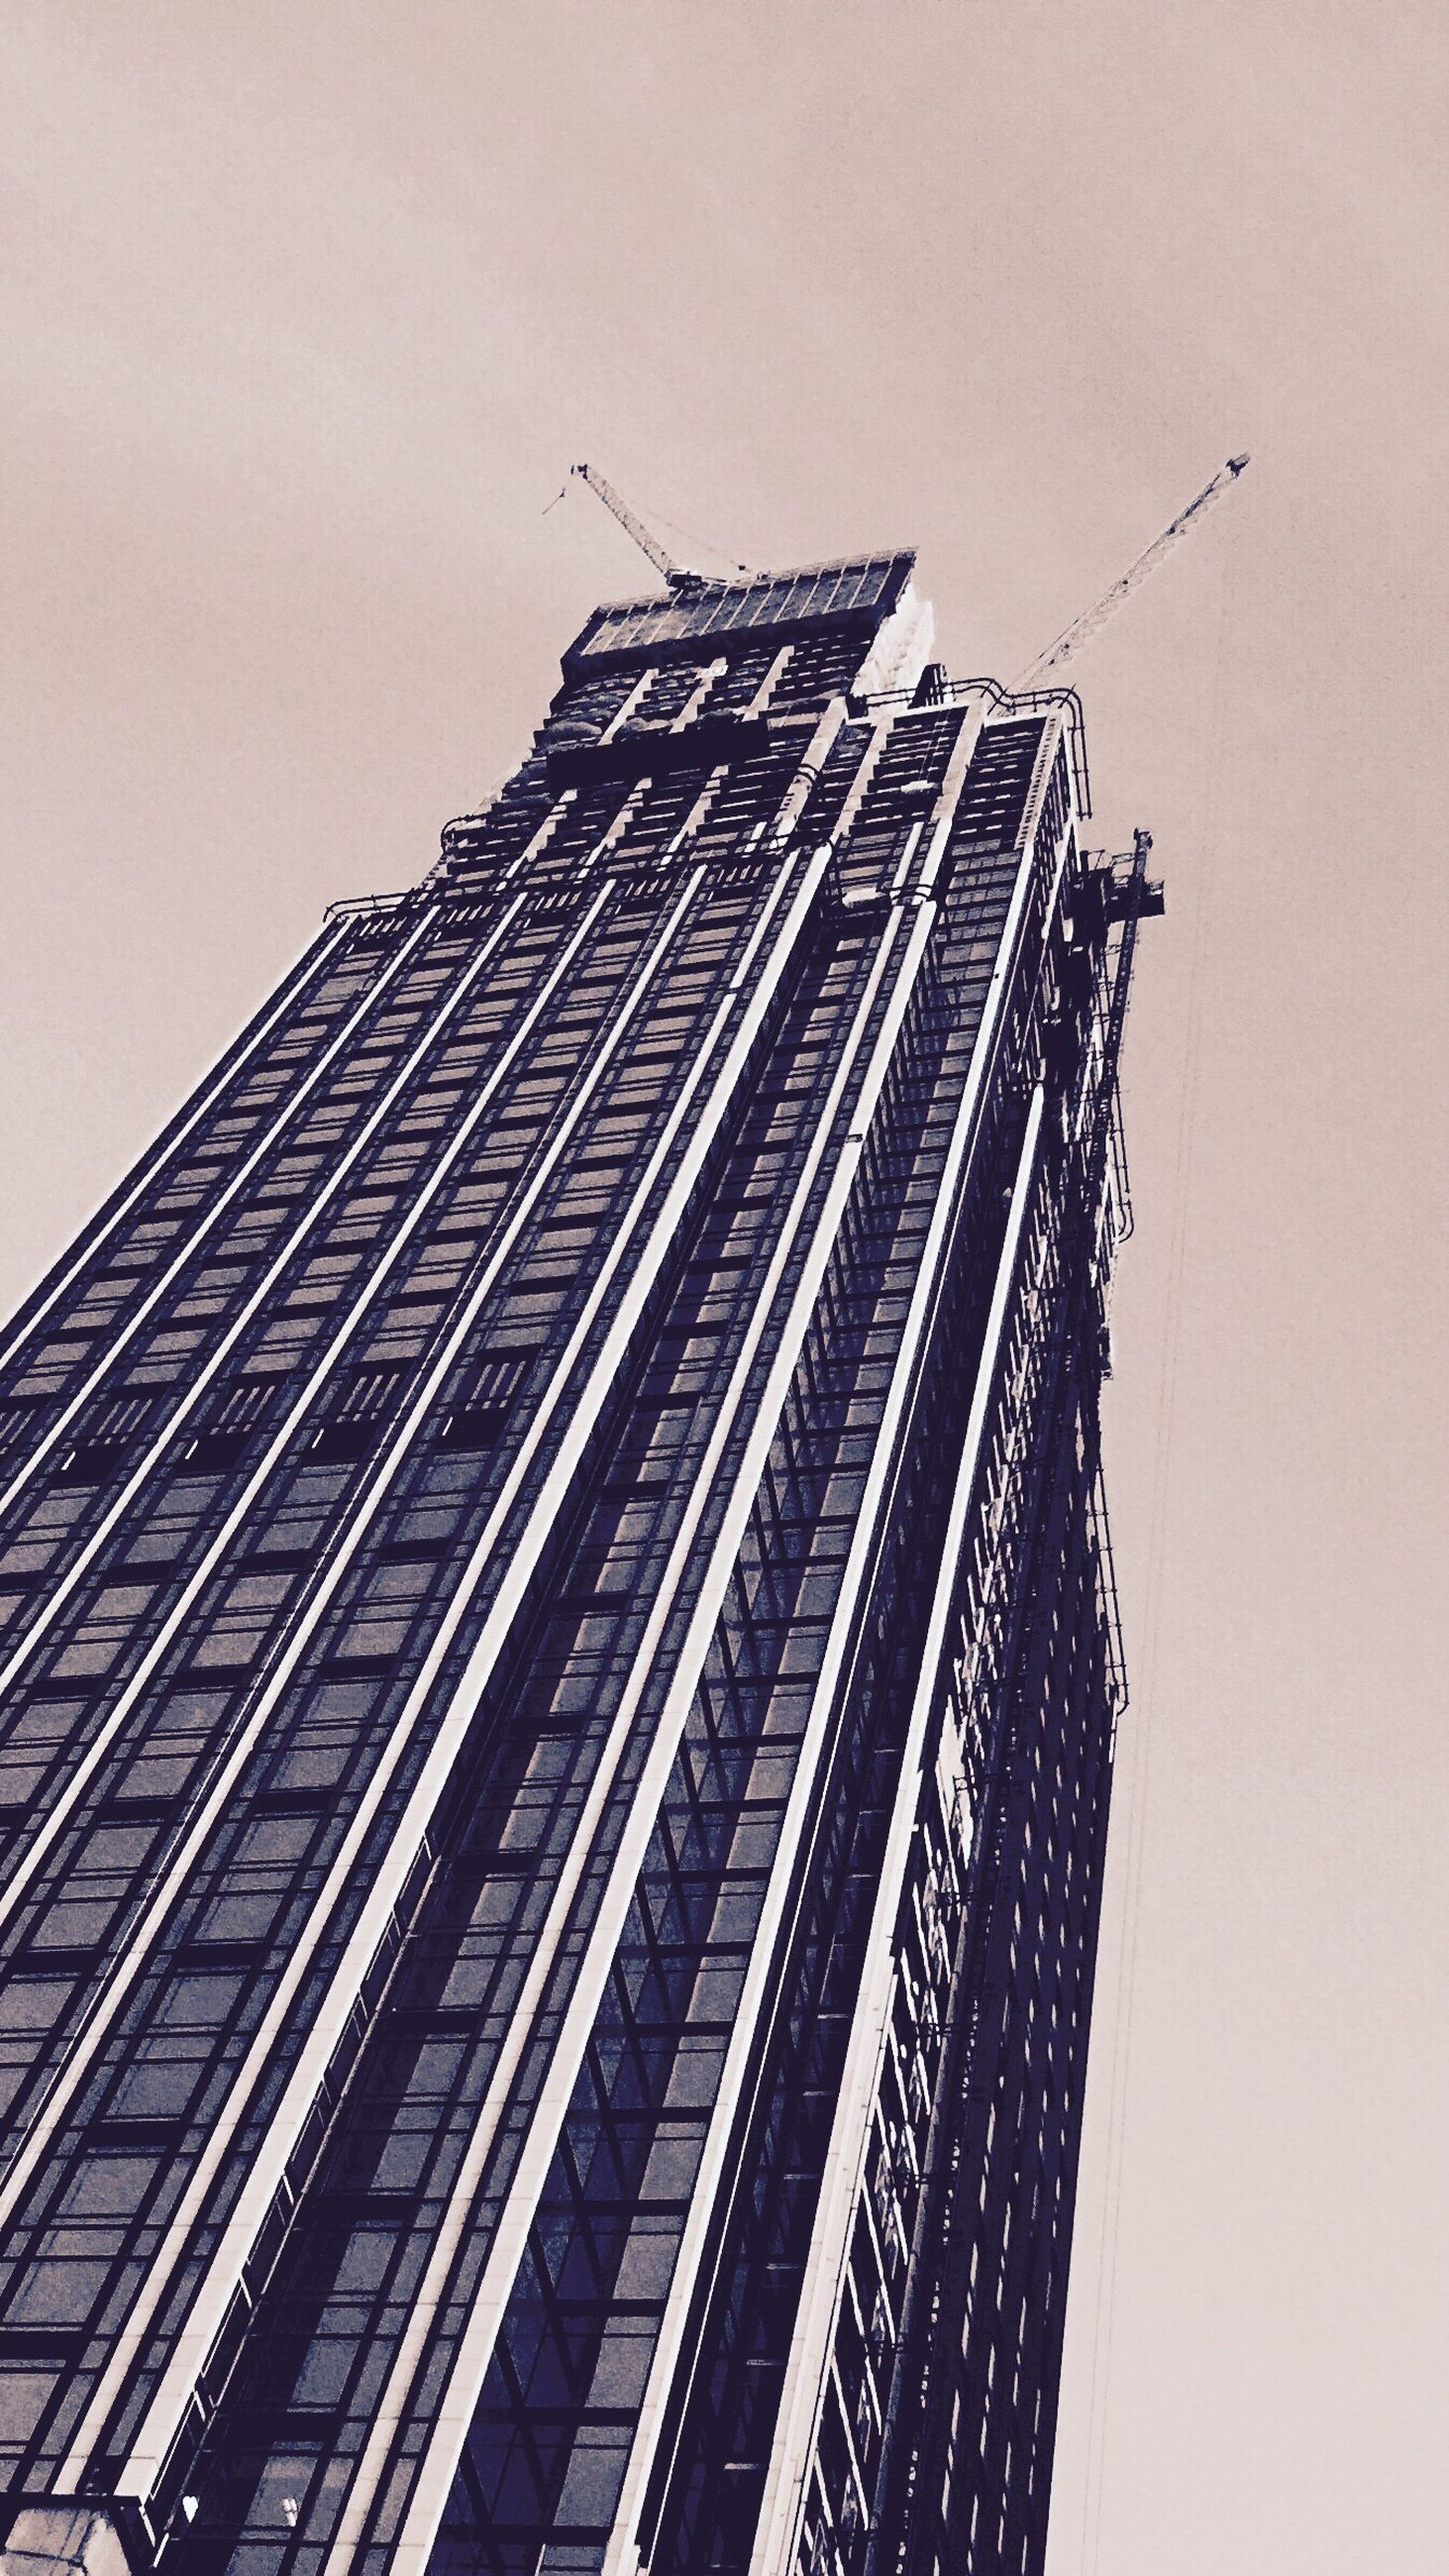 low angle view, architecture, building exterior, built structure, tall - high, clear sky, tower, bird, skyscraper, flying, city, modern, sky, animal themes, animals in the wild, capital cities, tall, development, office building, crane - construction machinery